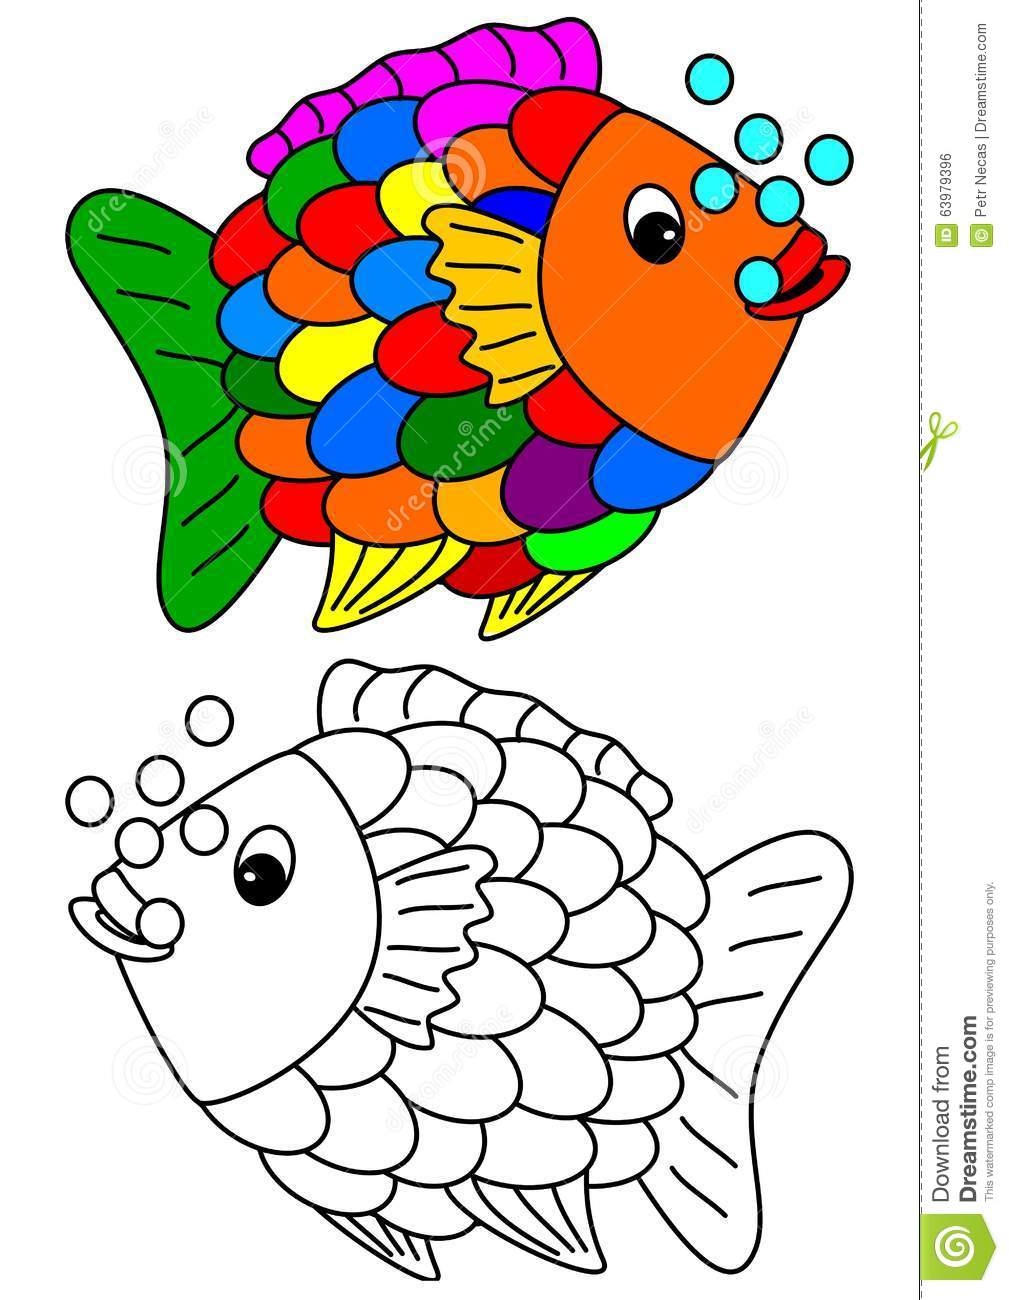 Color coloring book for young children colorful fish for Children s fish book